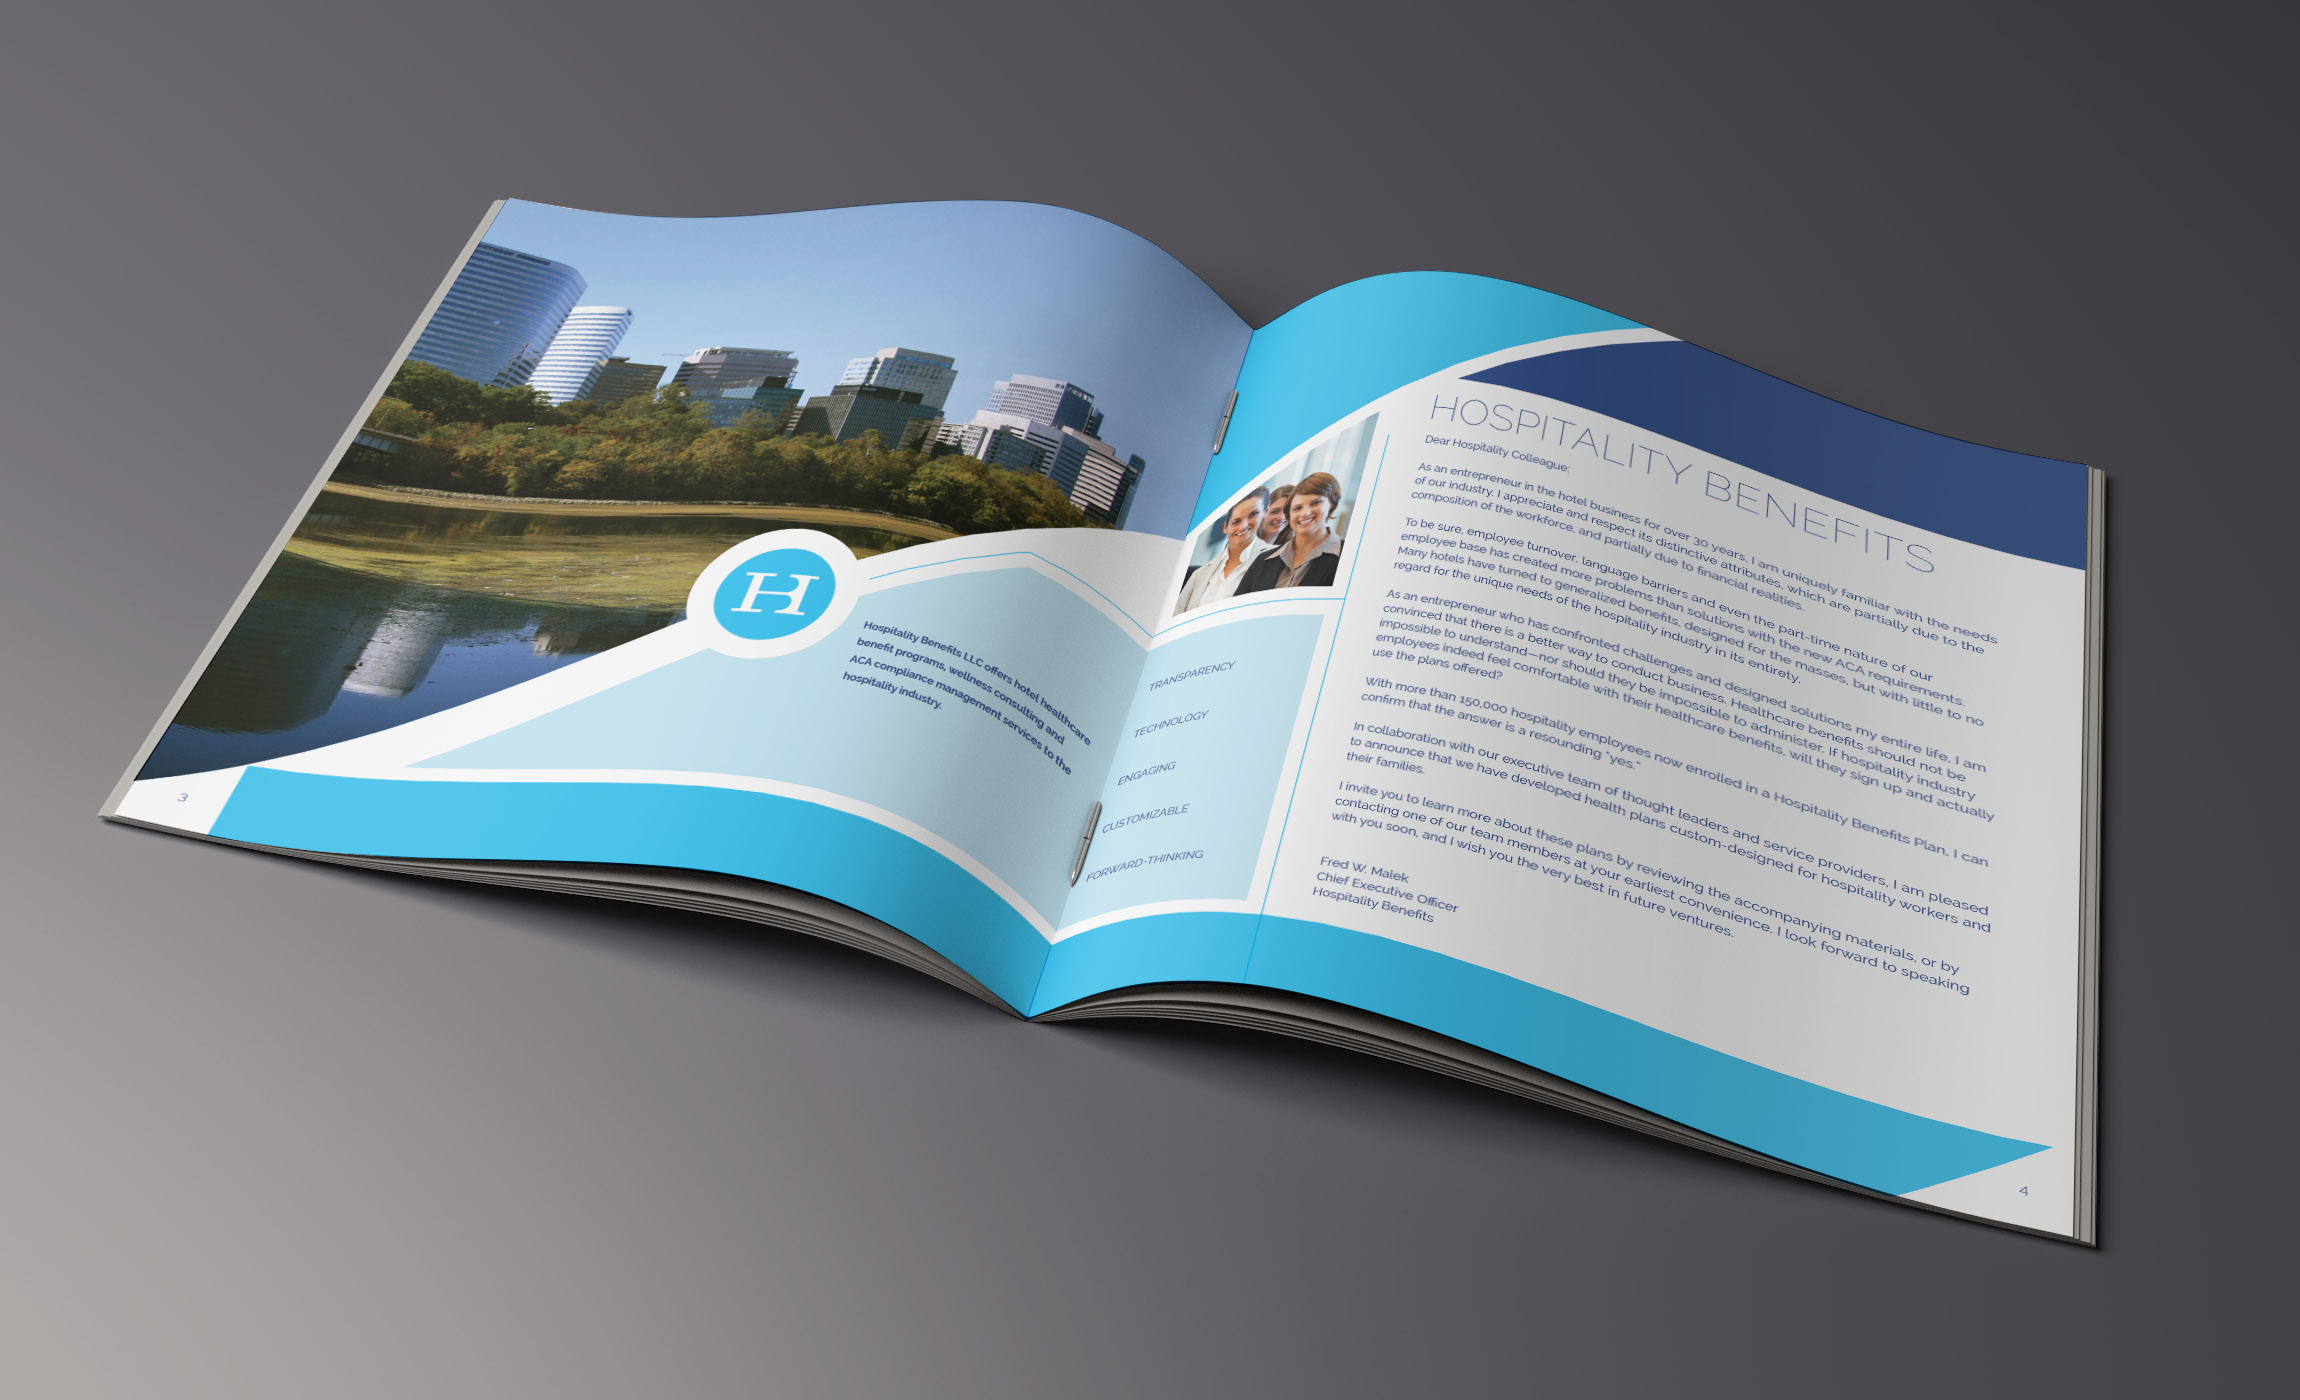 Hospitality Benefits Brochure